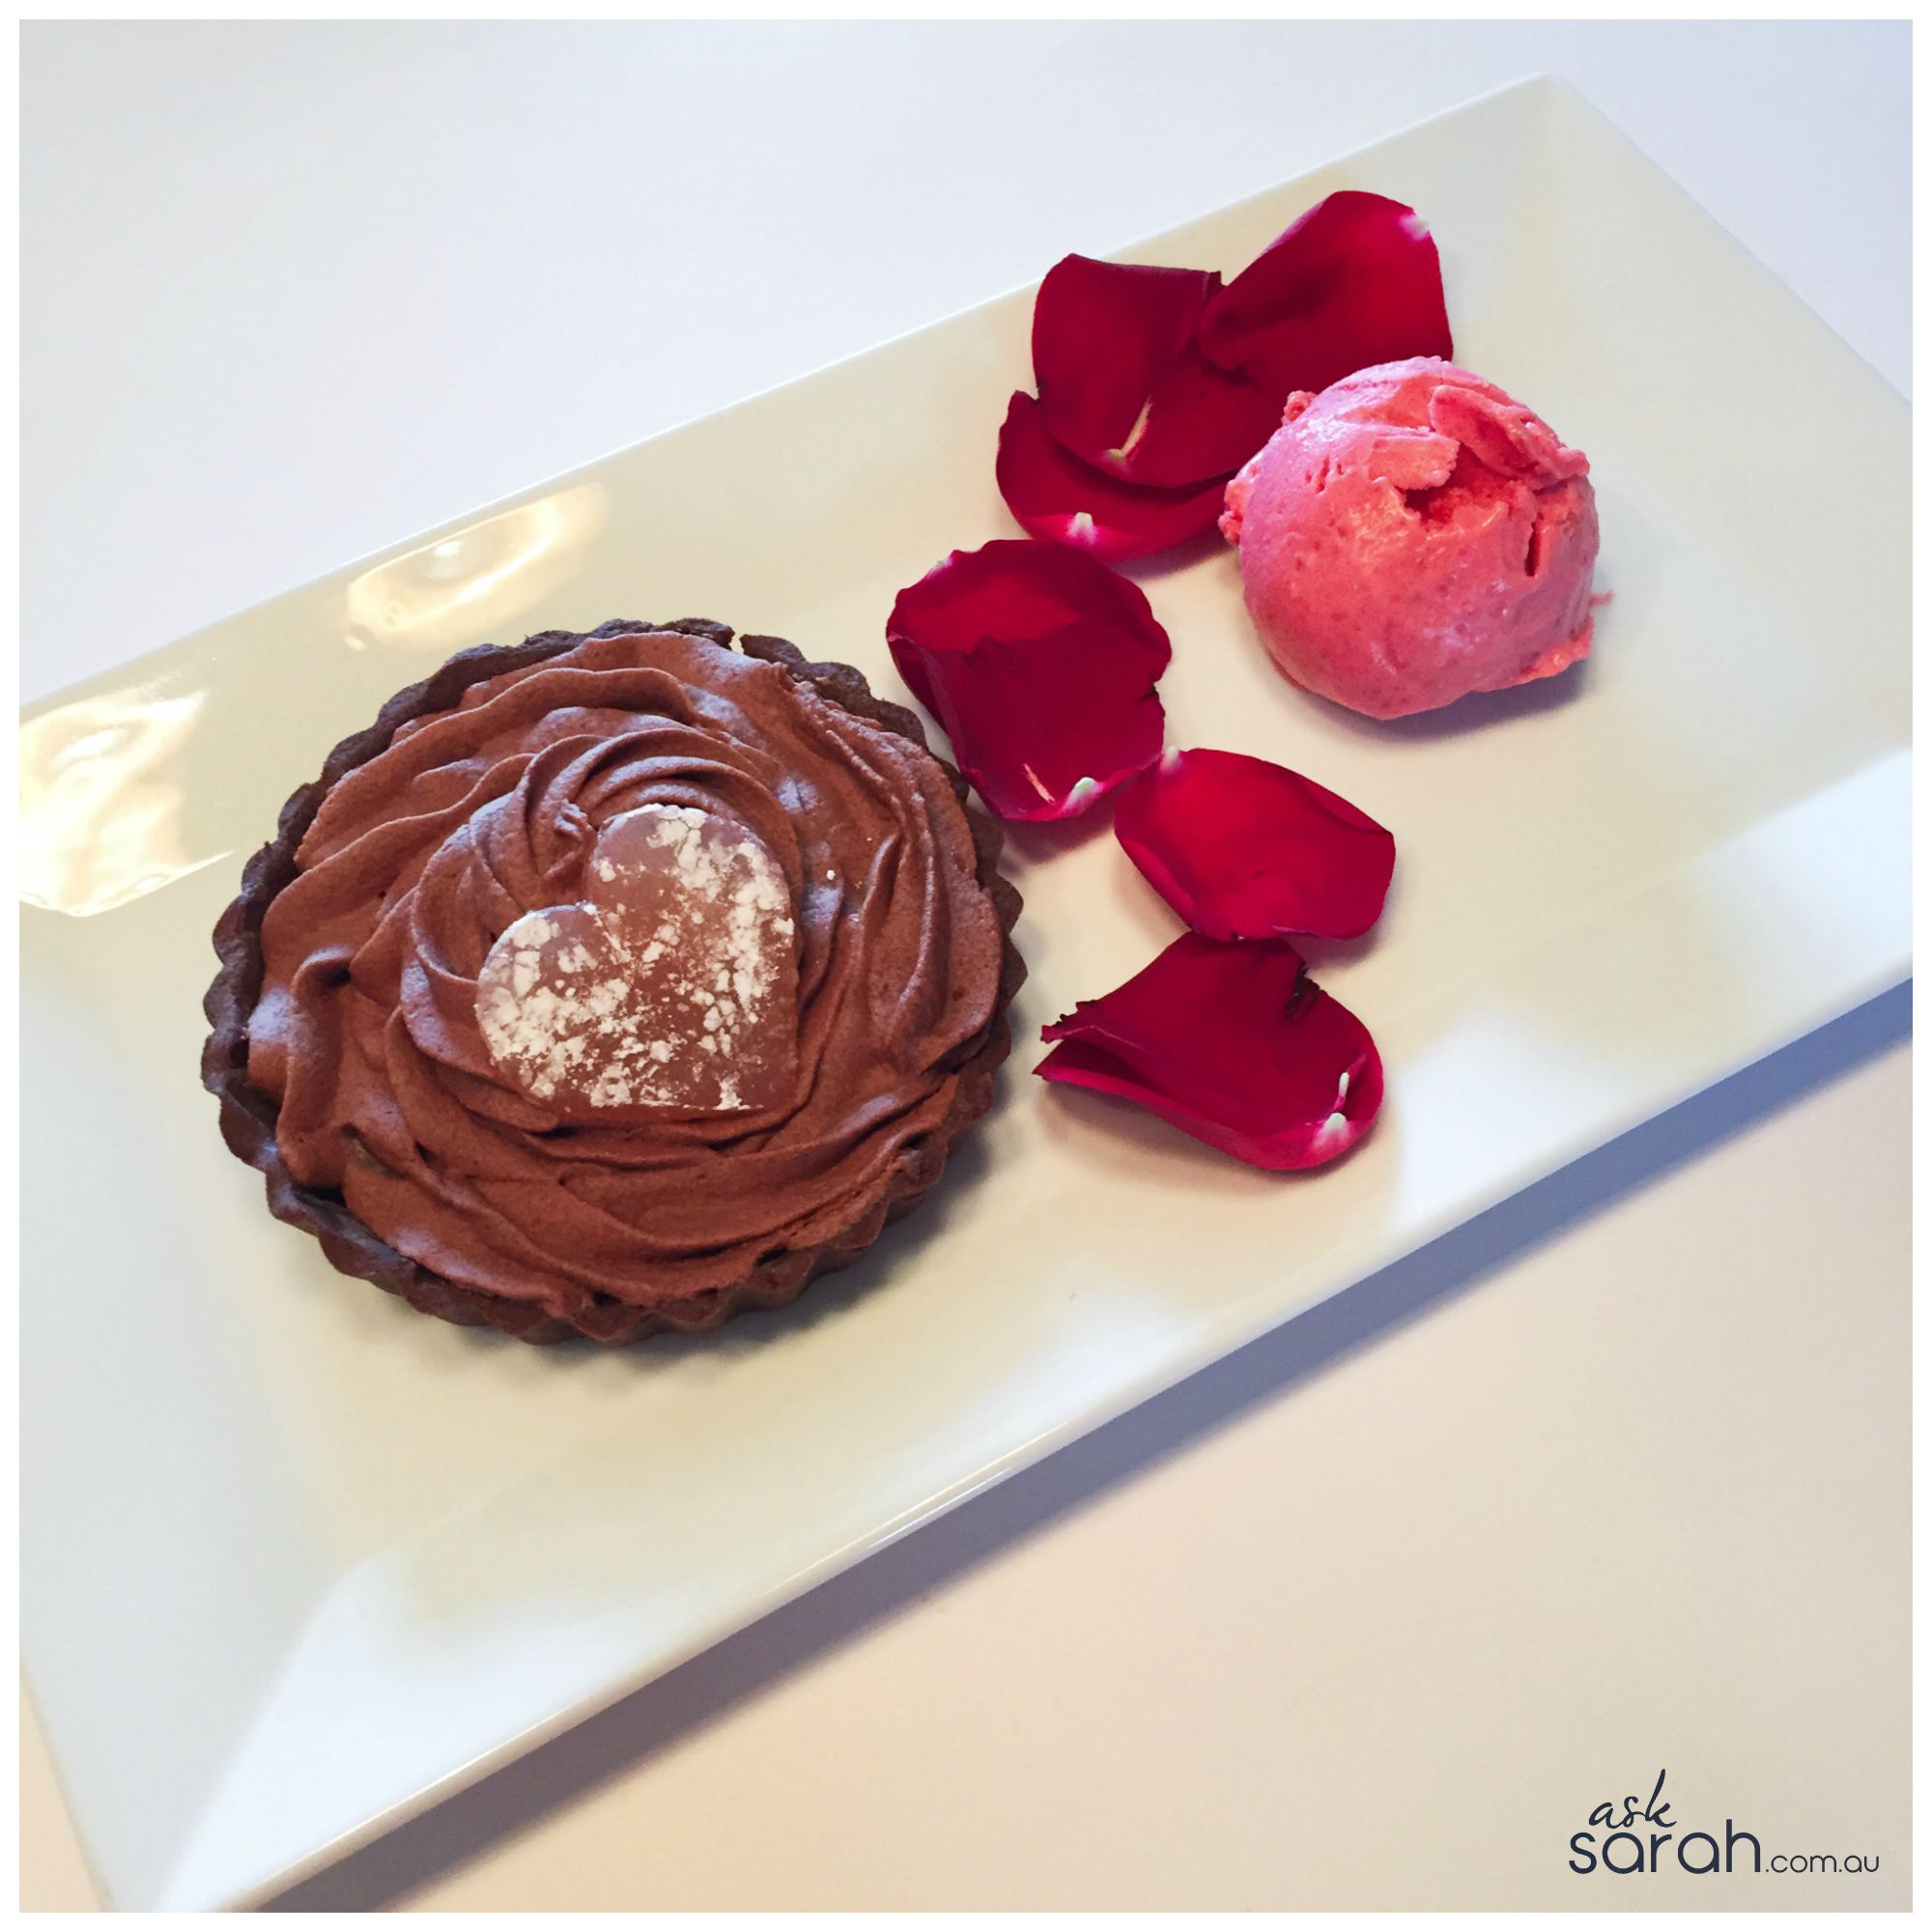 Recipe: The Five Senses Chocolate Raspberry Rose Dessert {A Perfect Fifth Anniversary Treat}